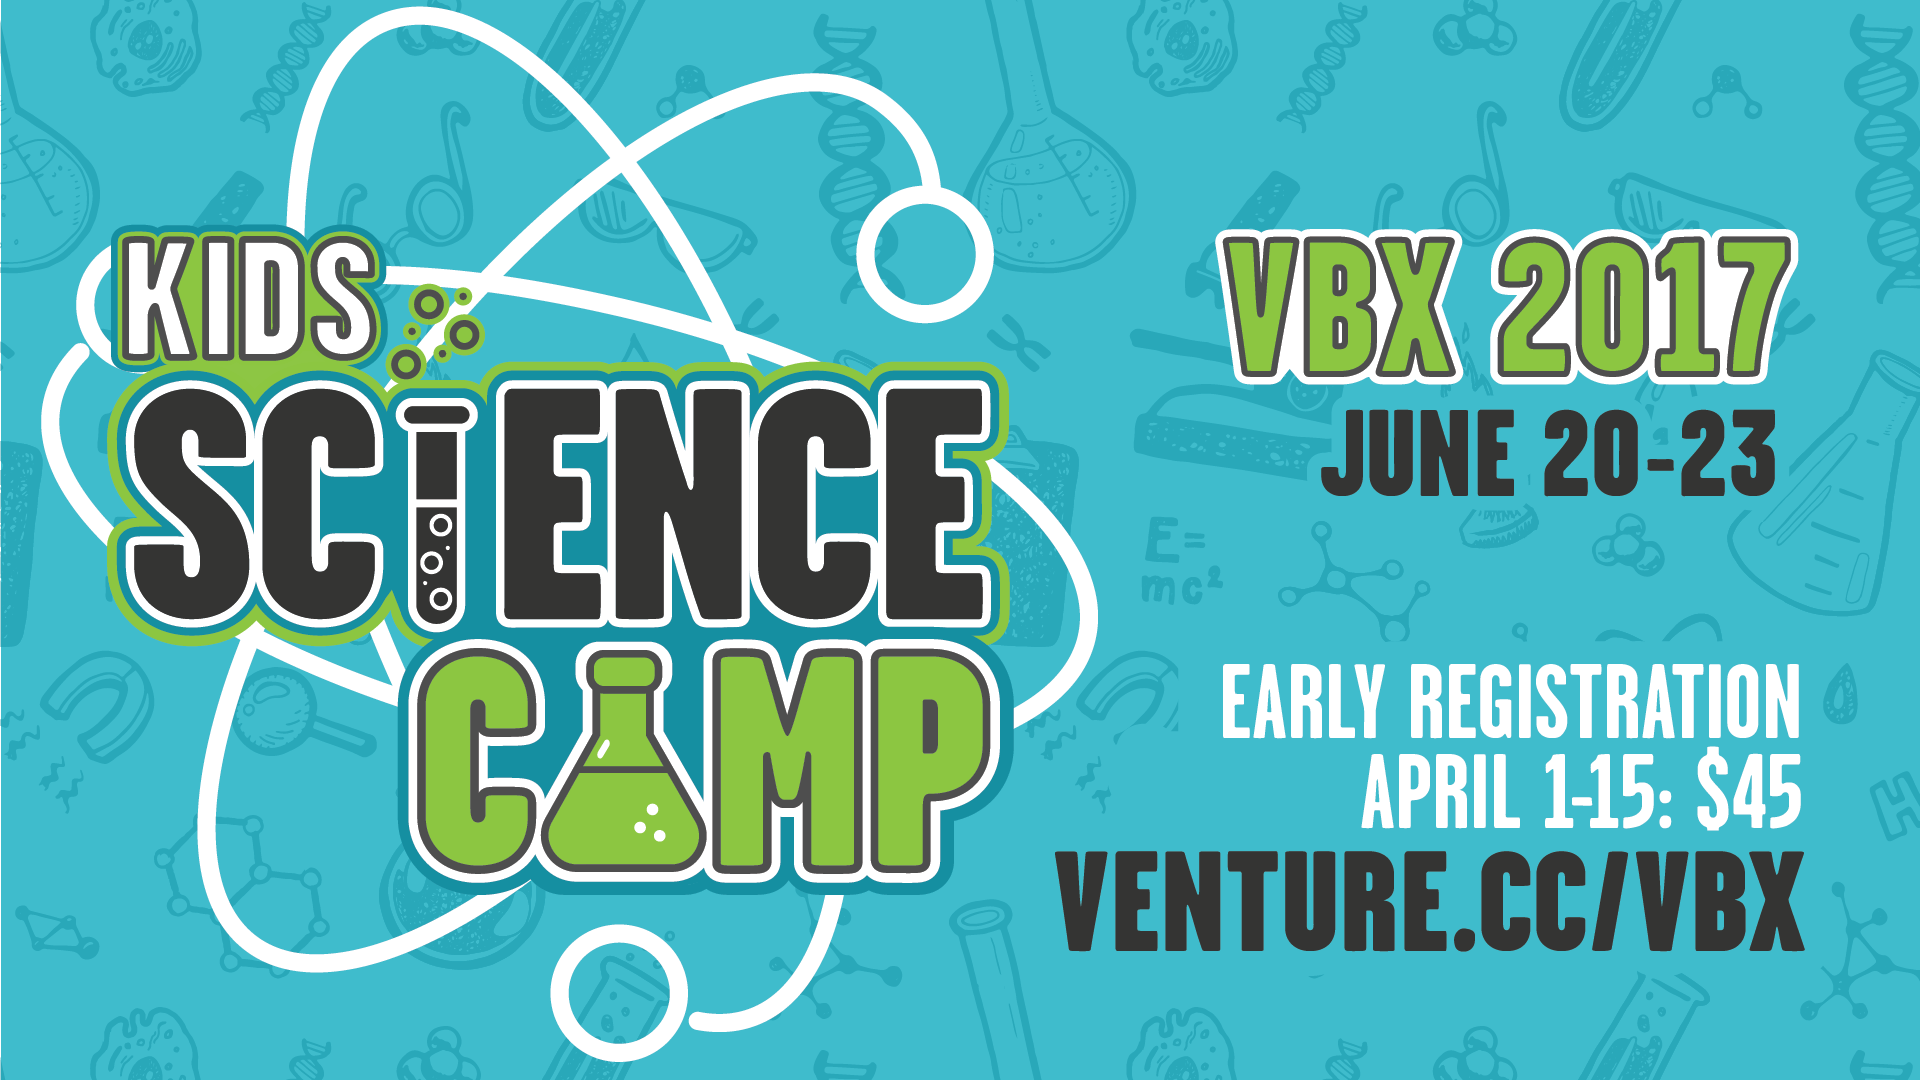 Kids Science Camp Vacation BIble School (VBS VBX) Main Branding